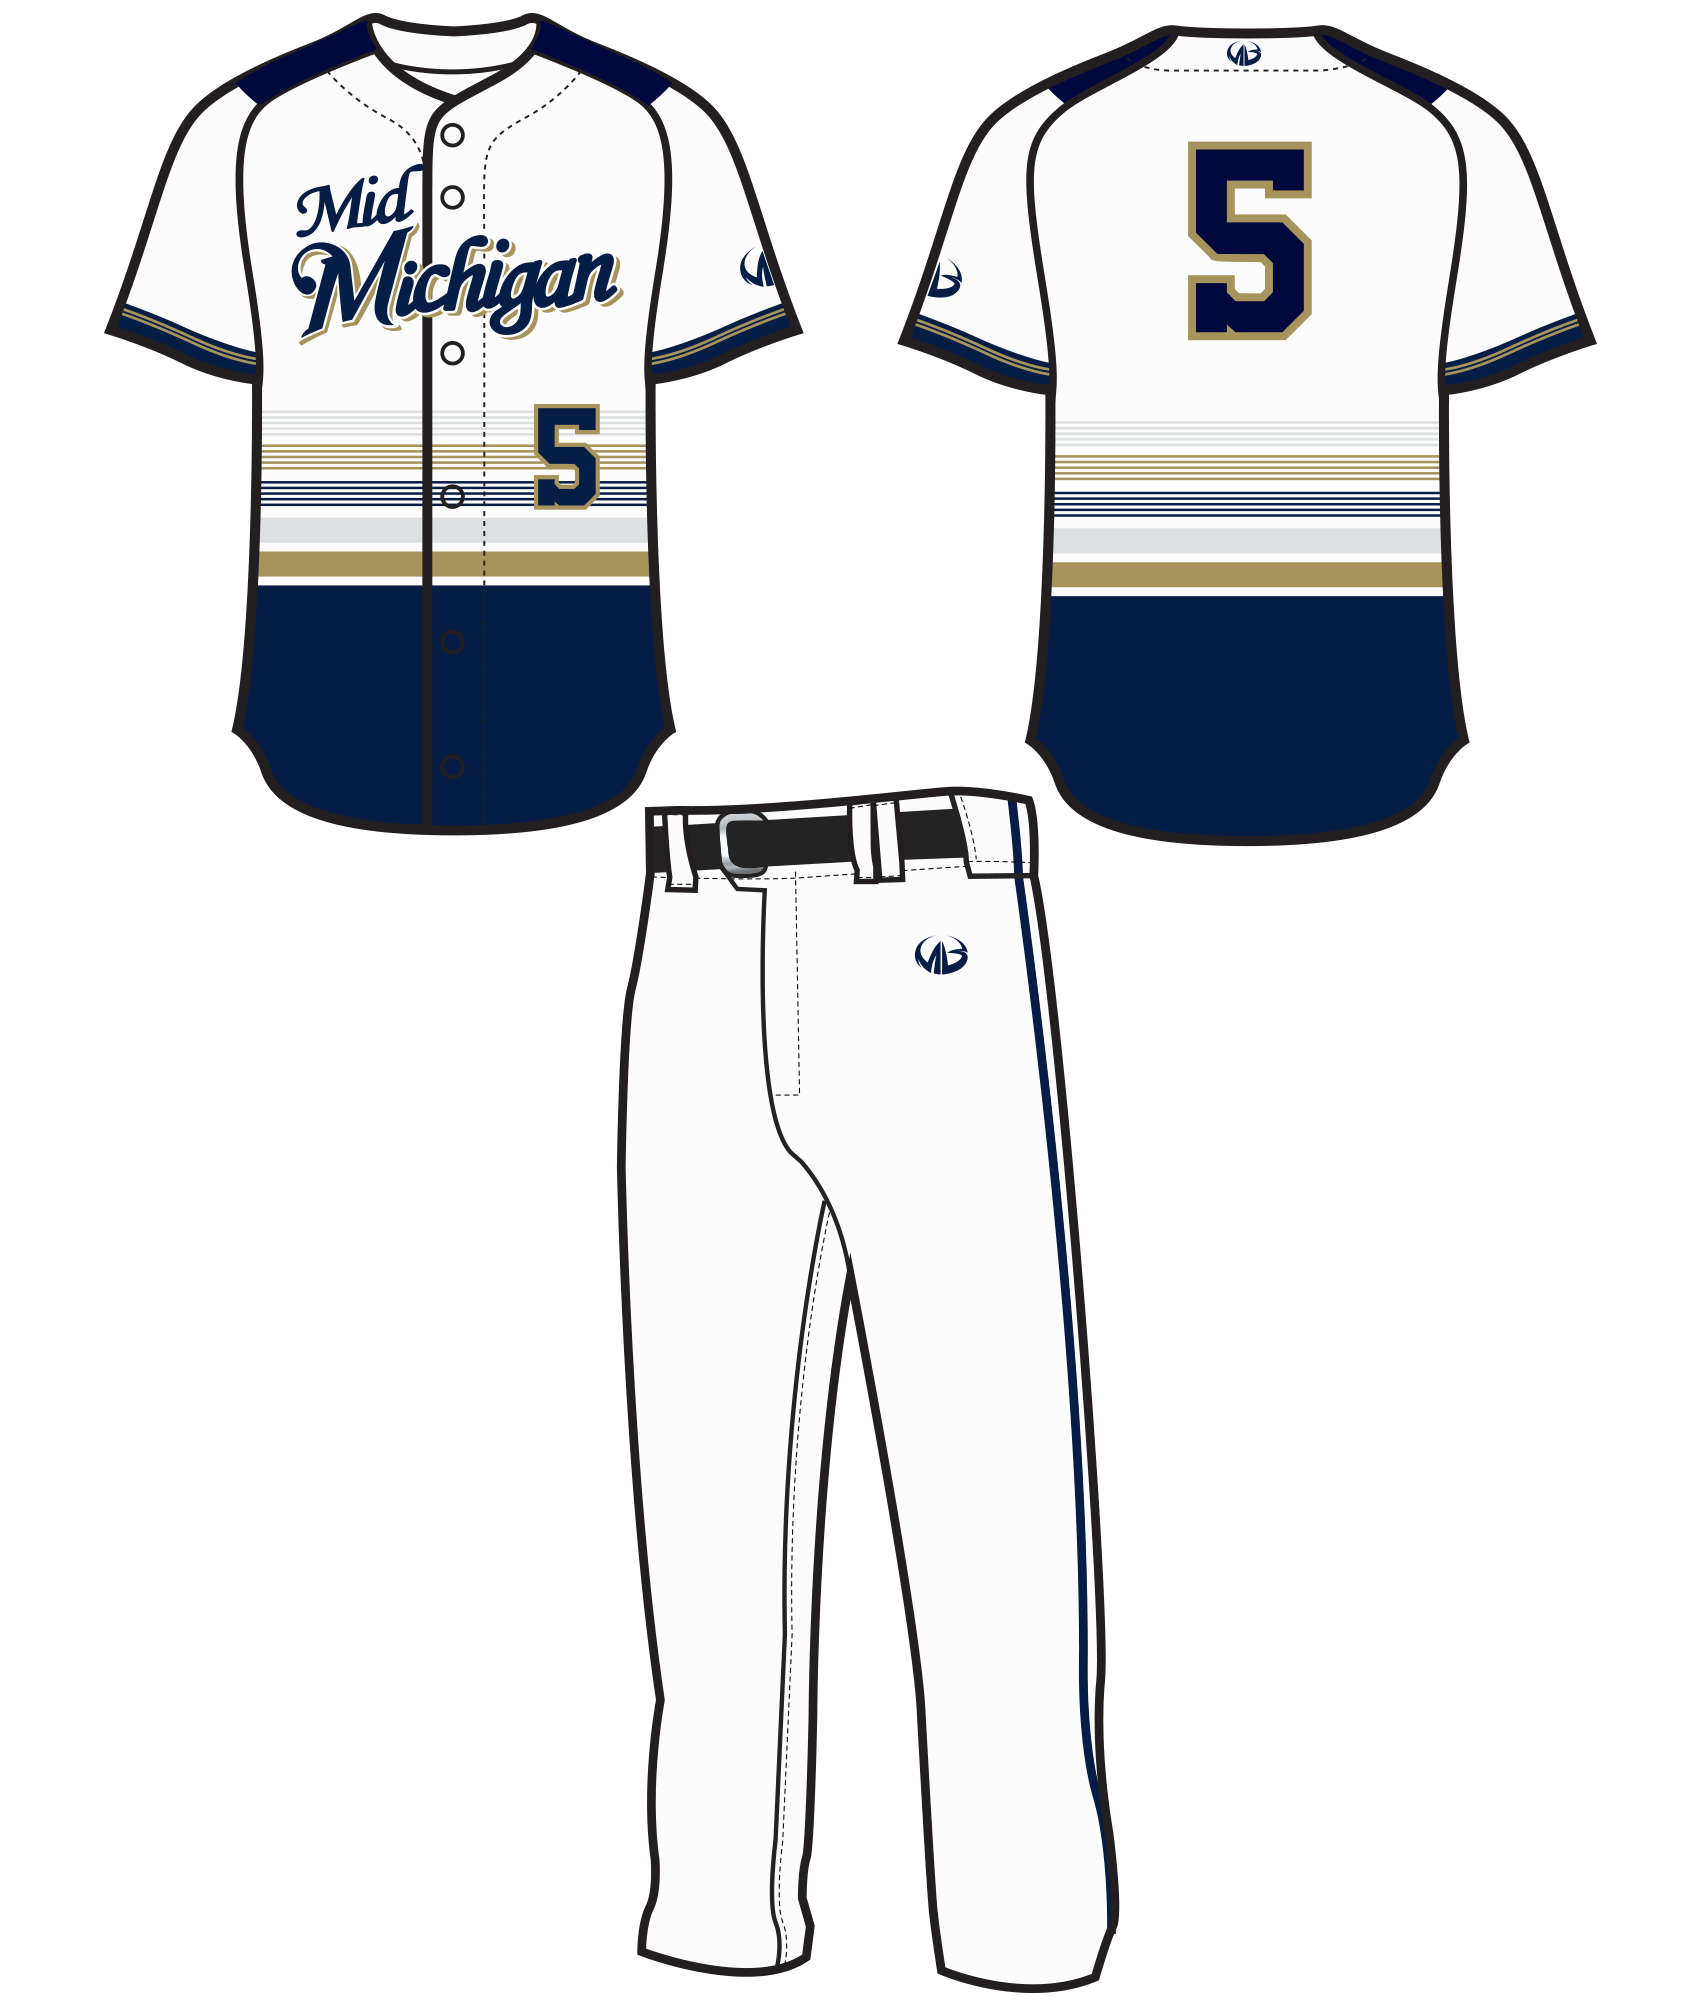 softball uniform design templates custom baseball uniforms customized uniforms custom